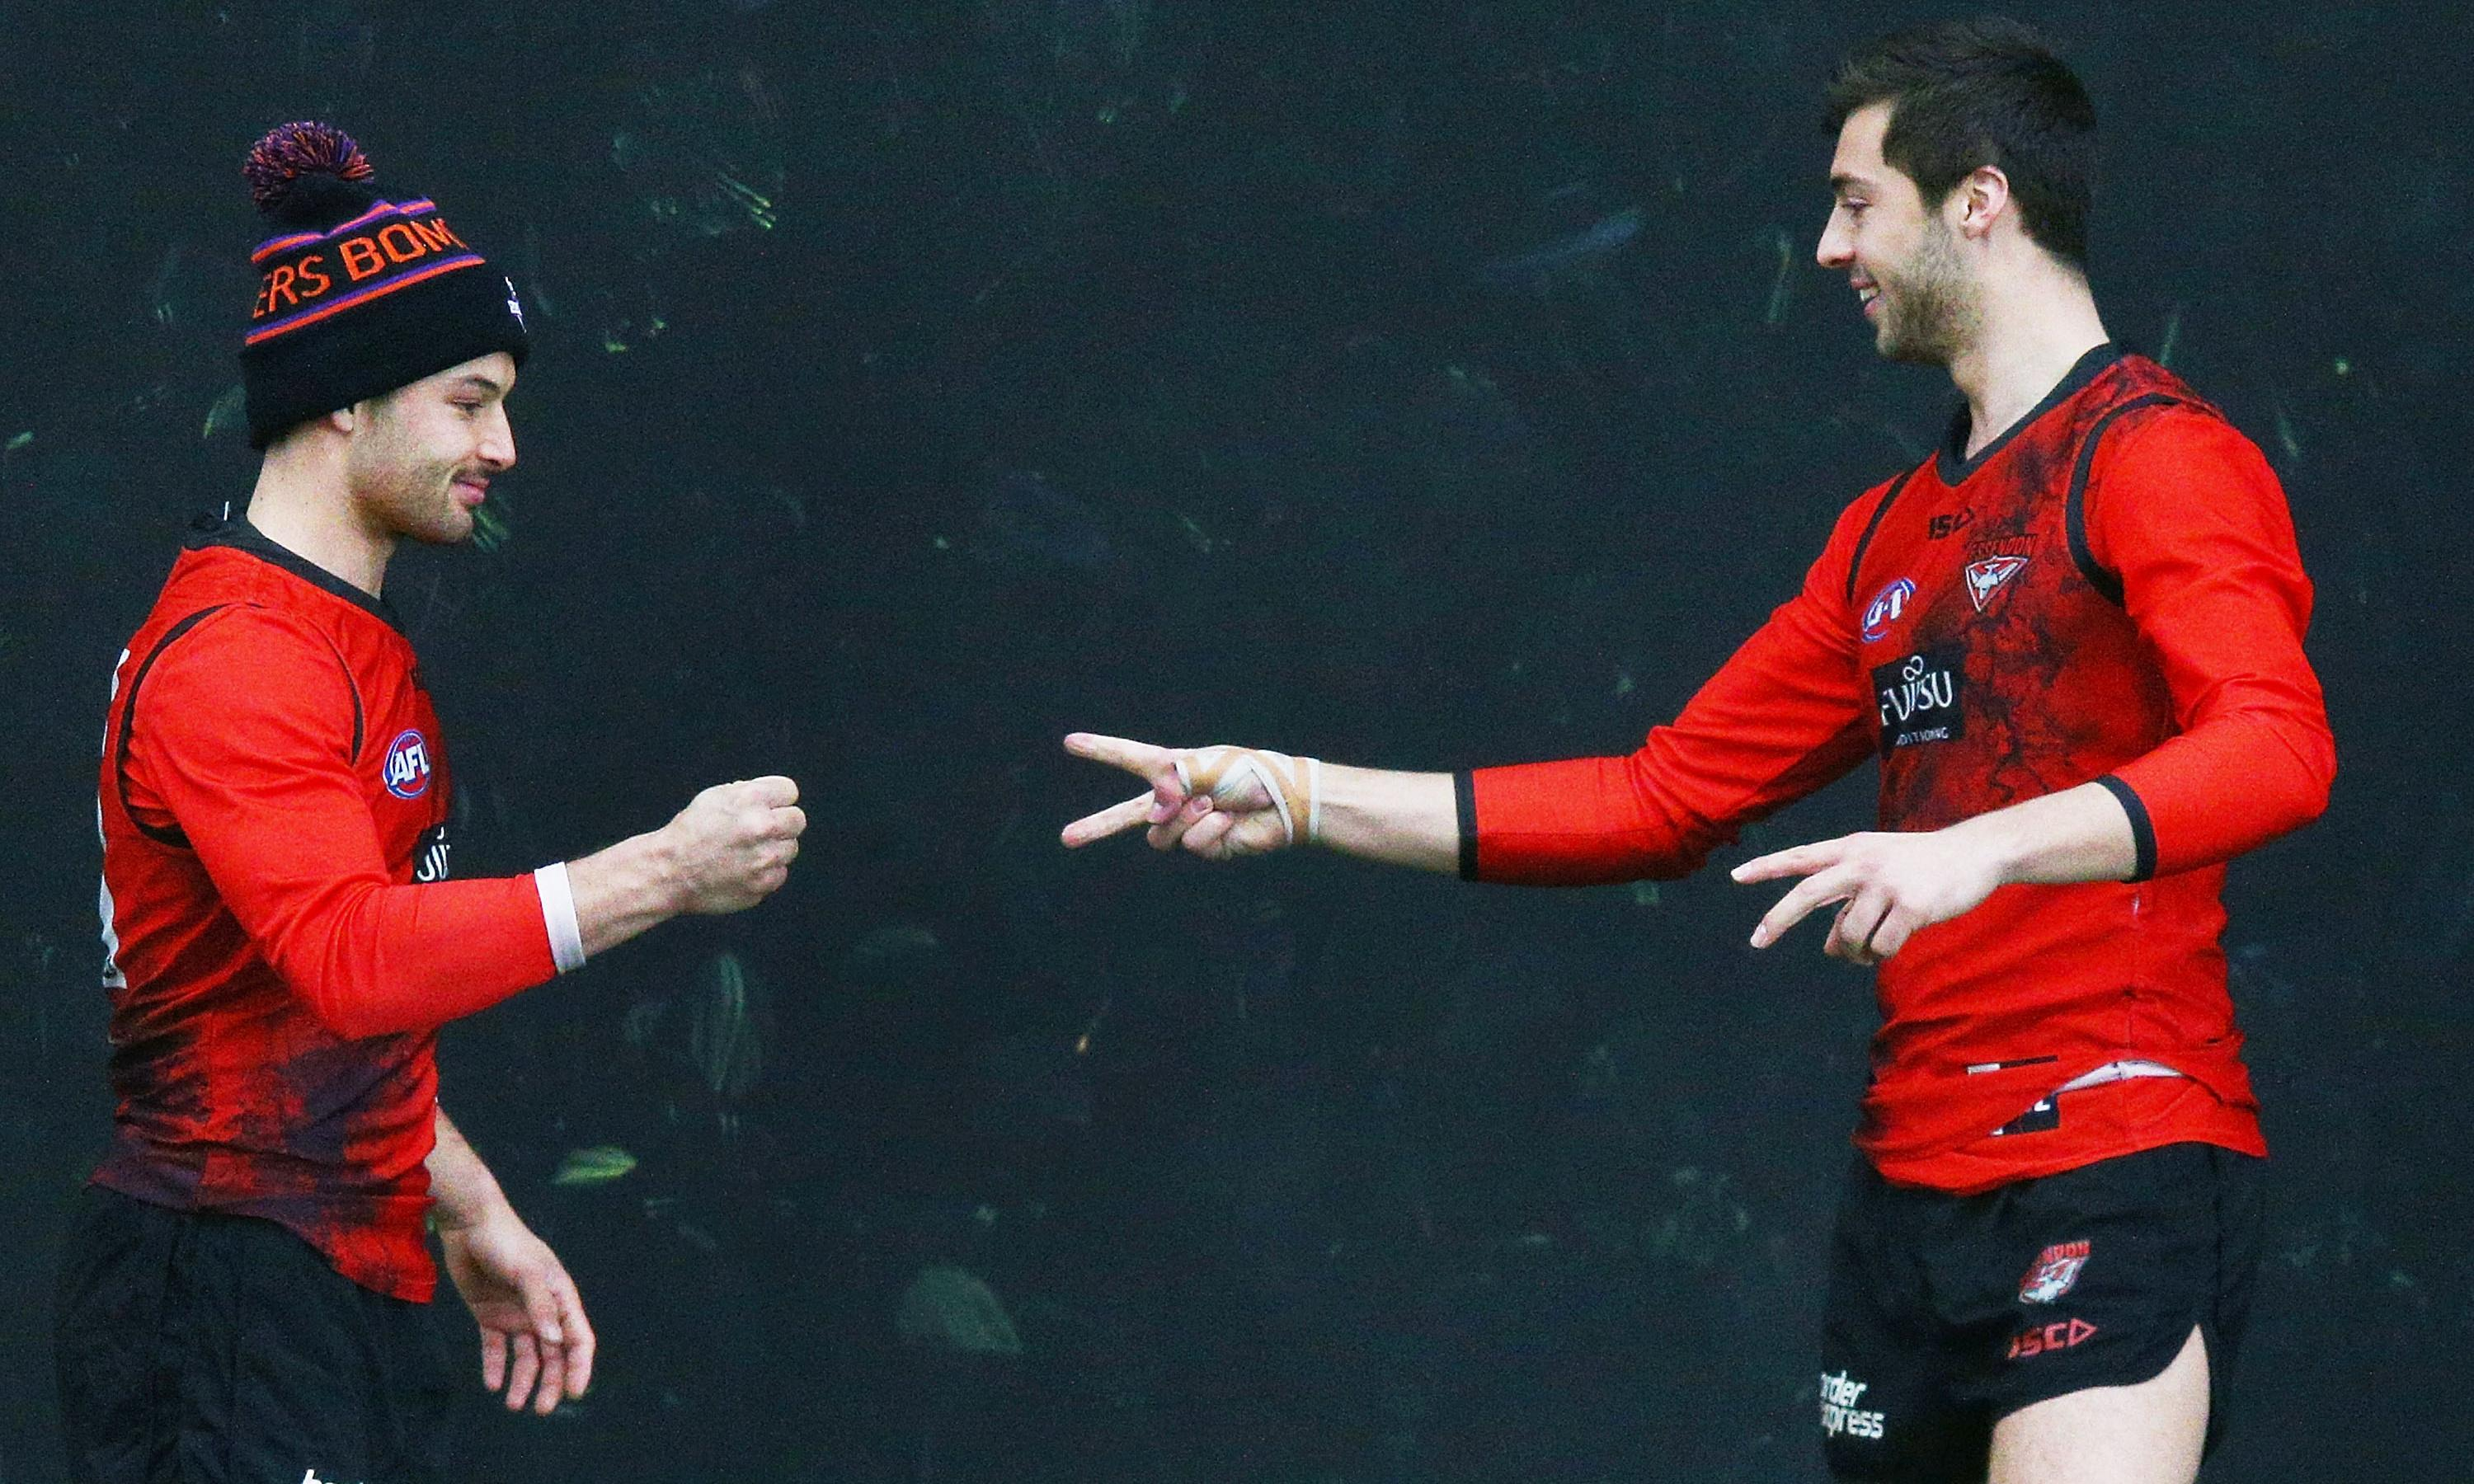 AFLX coin toss to be replaced by rock, paper, scissors